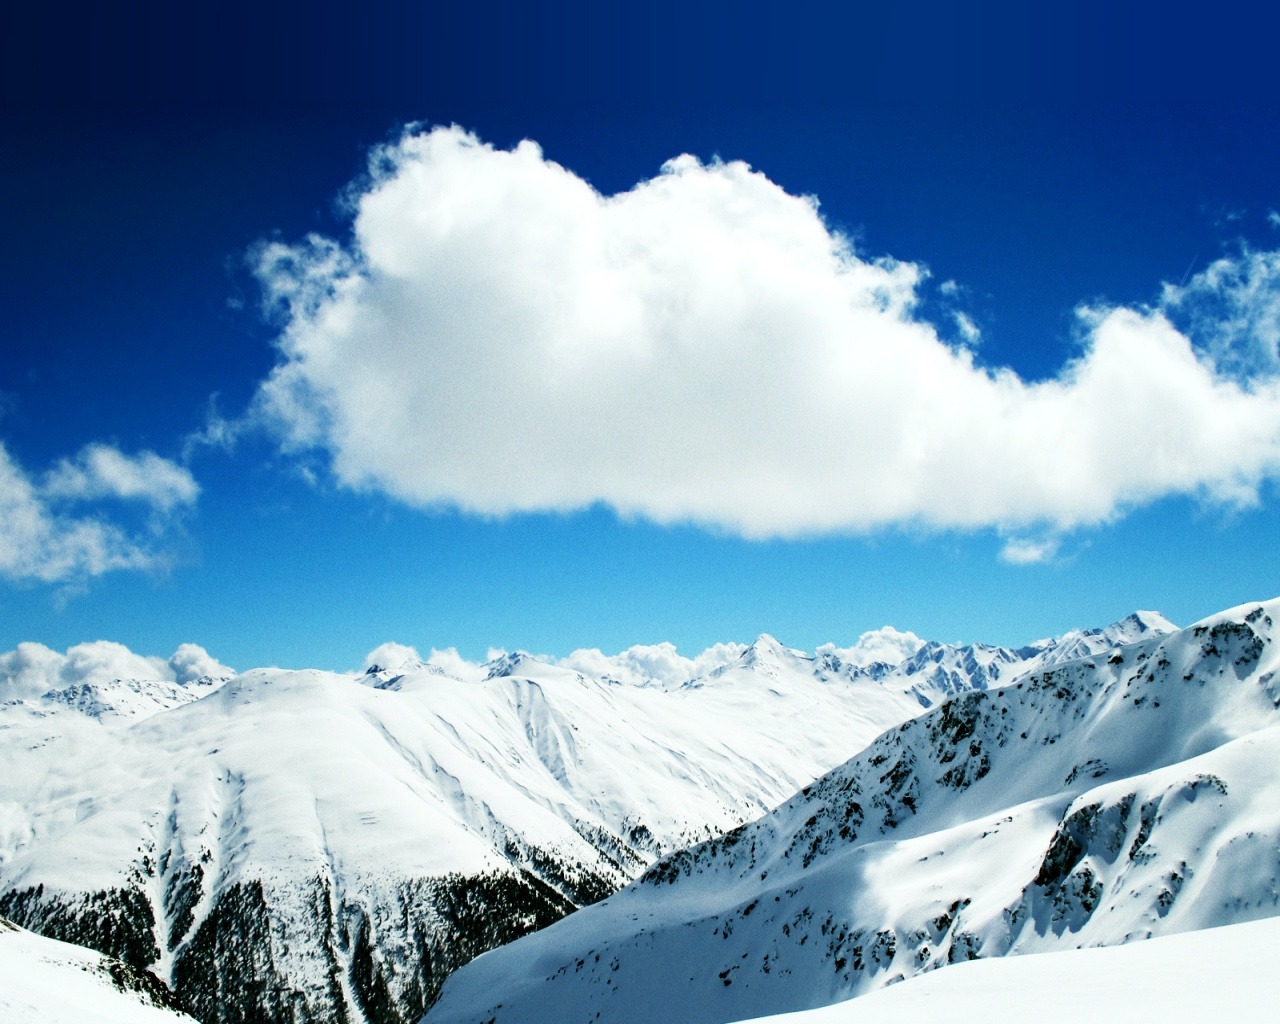 Snowy Background With Mountain: FULL WALLPAPER: Snow Mountain Wallpapers